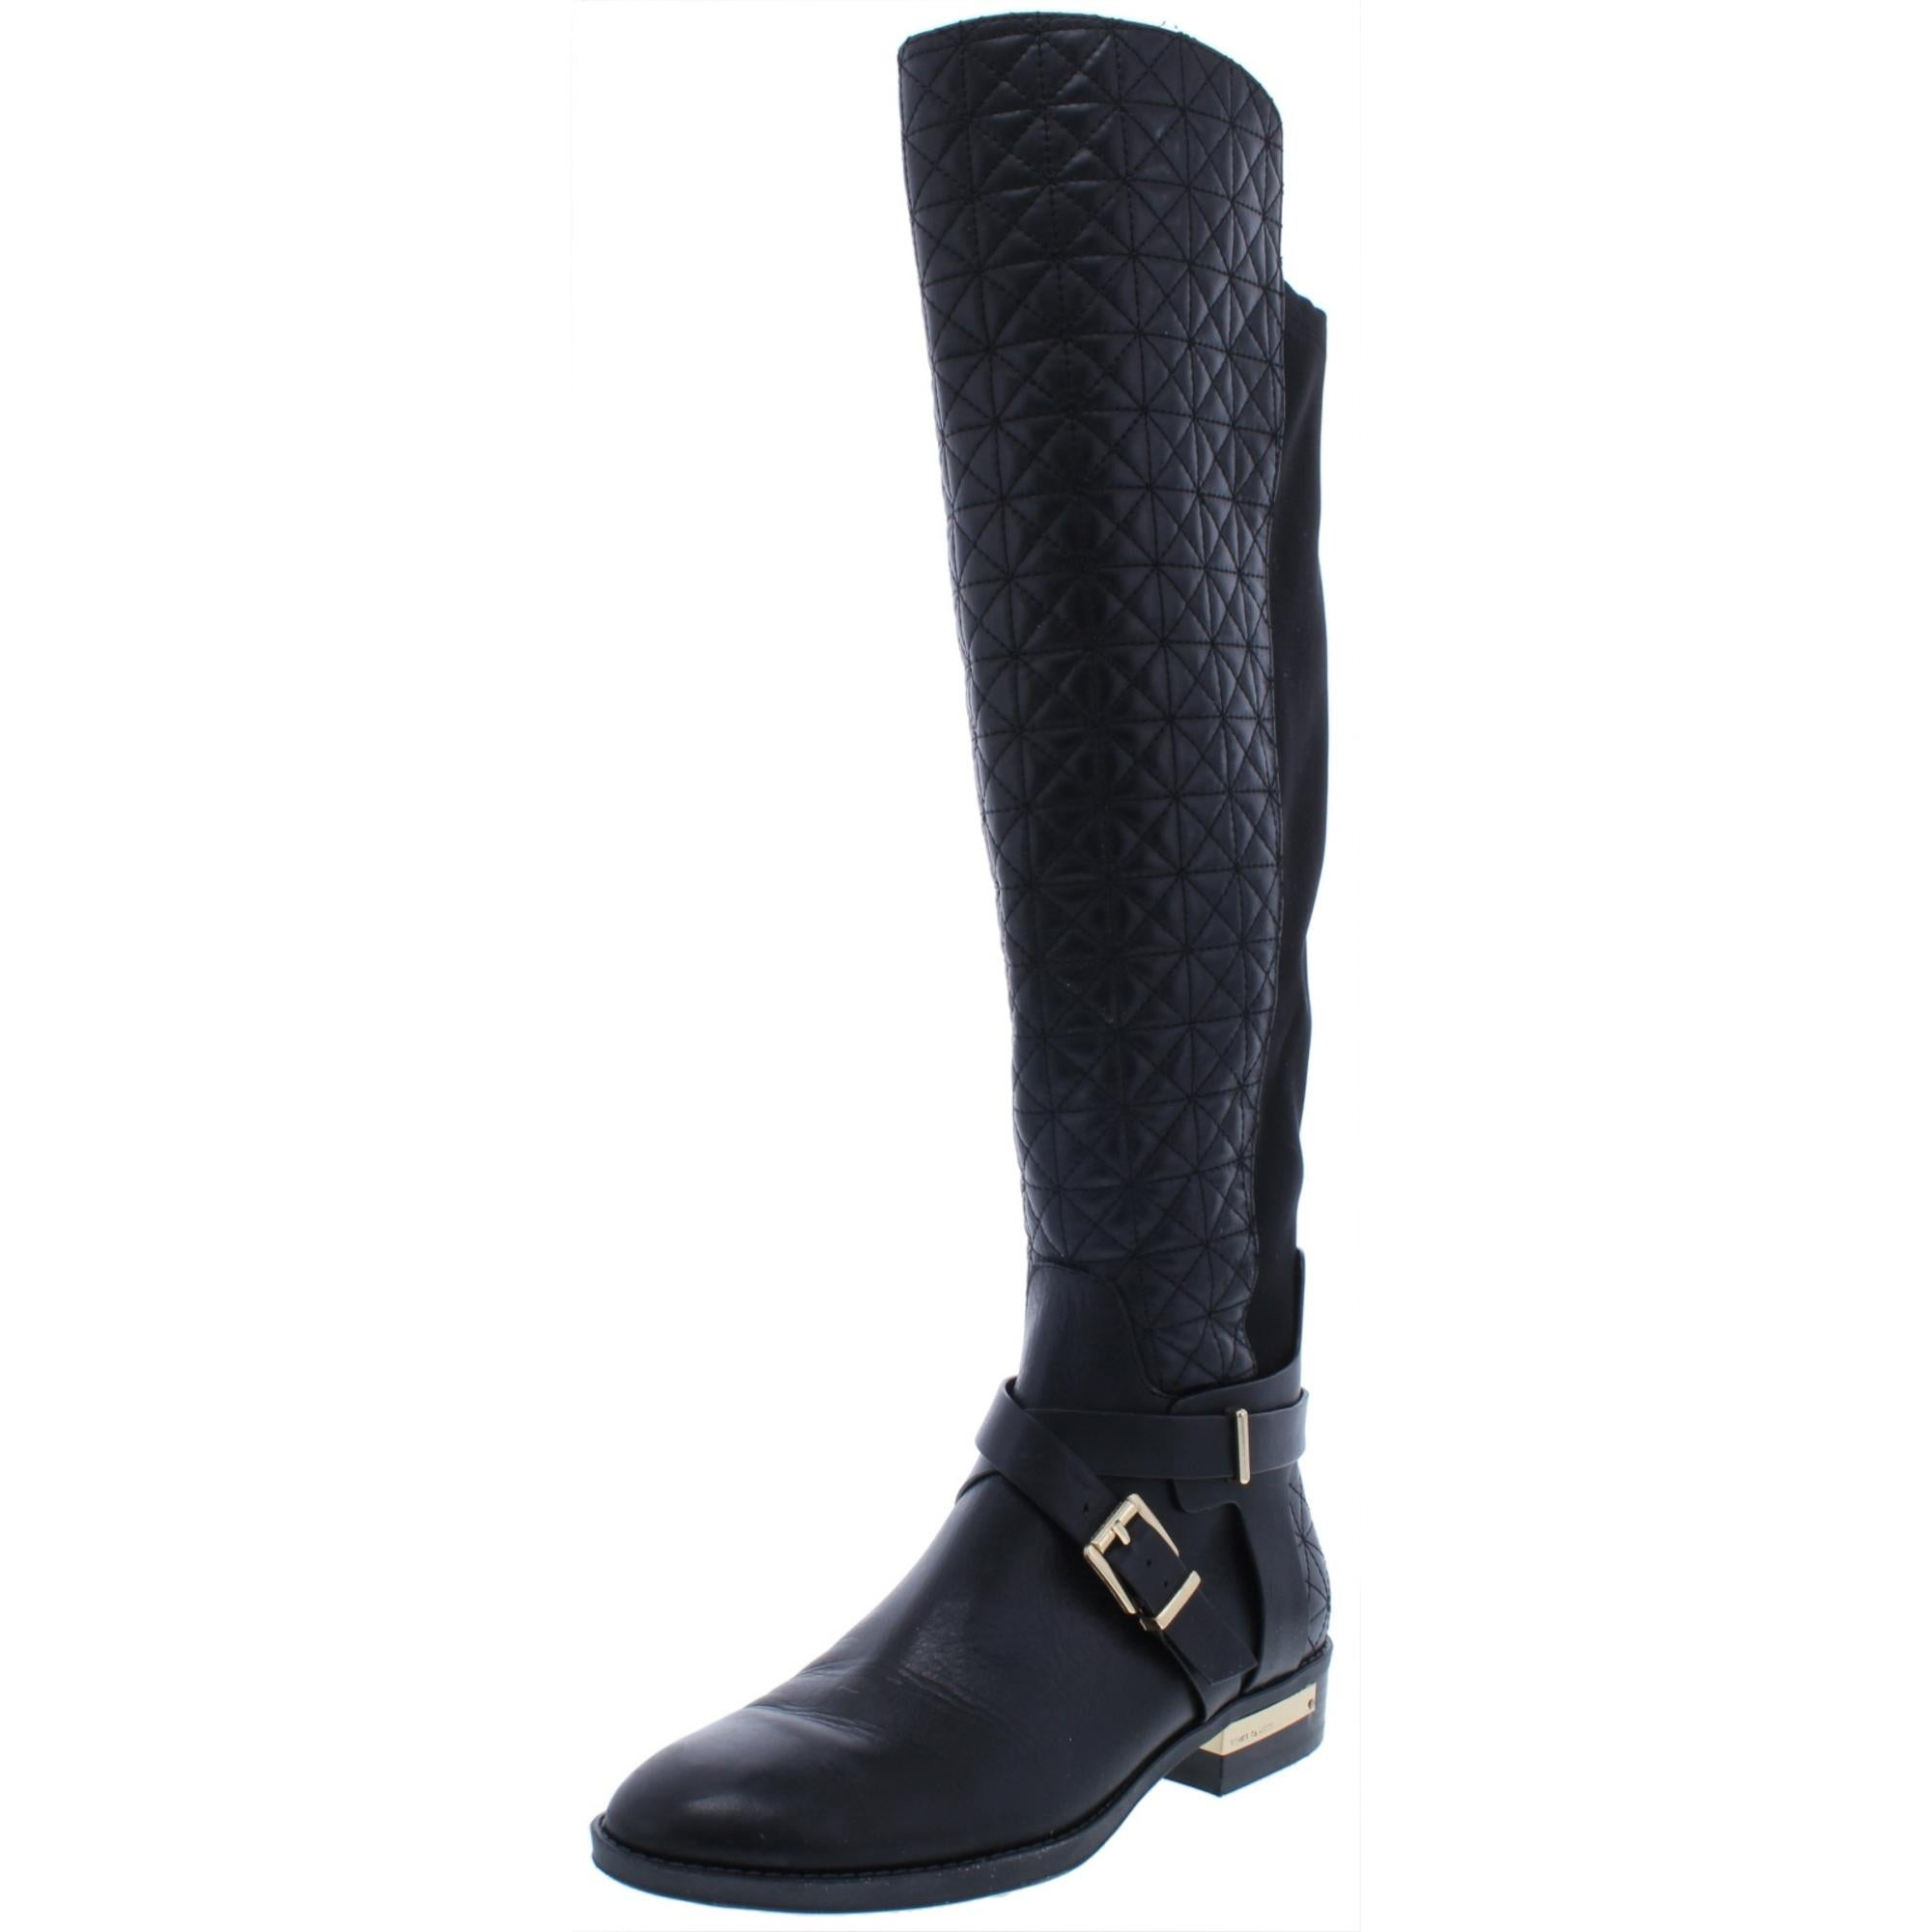 The-Knee Boots Wide Calf Quilted